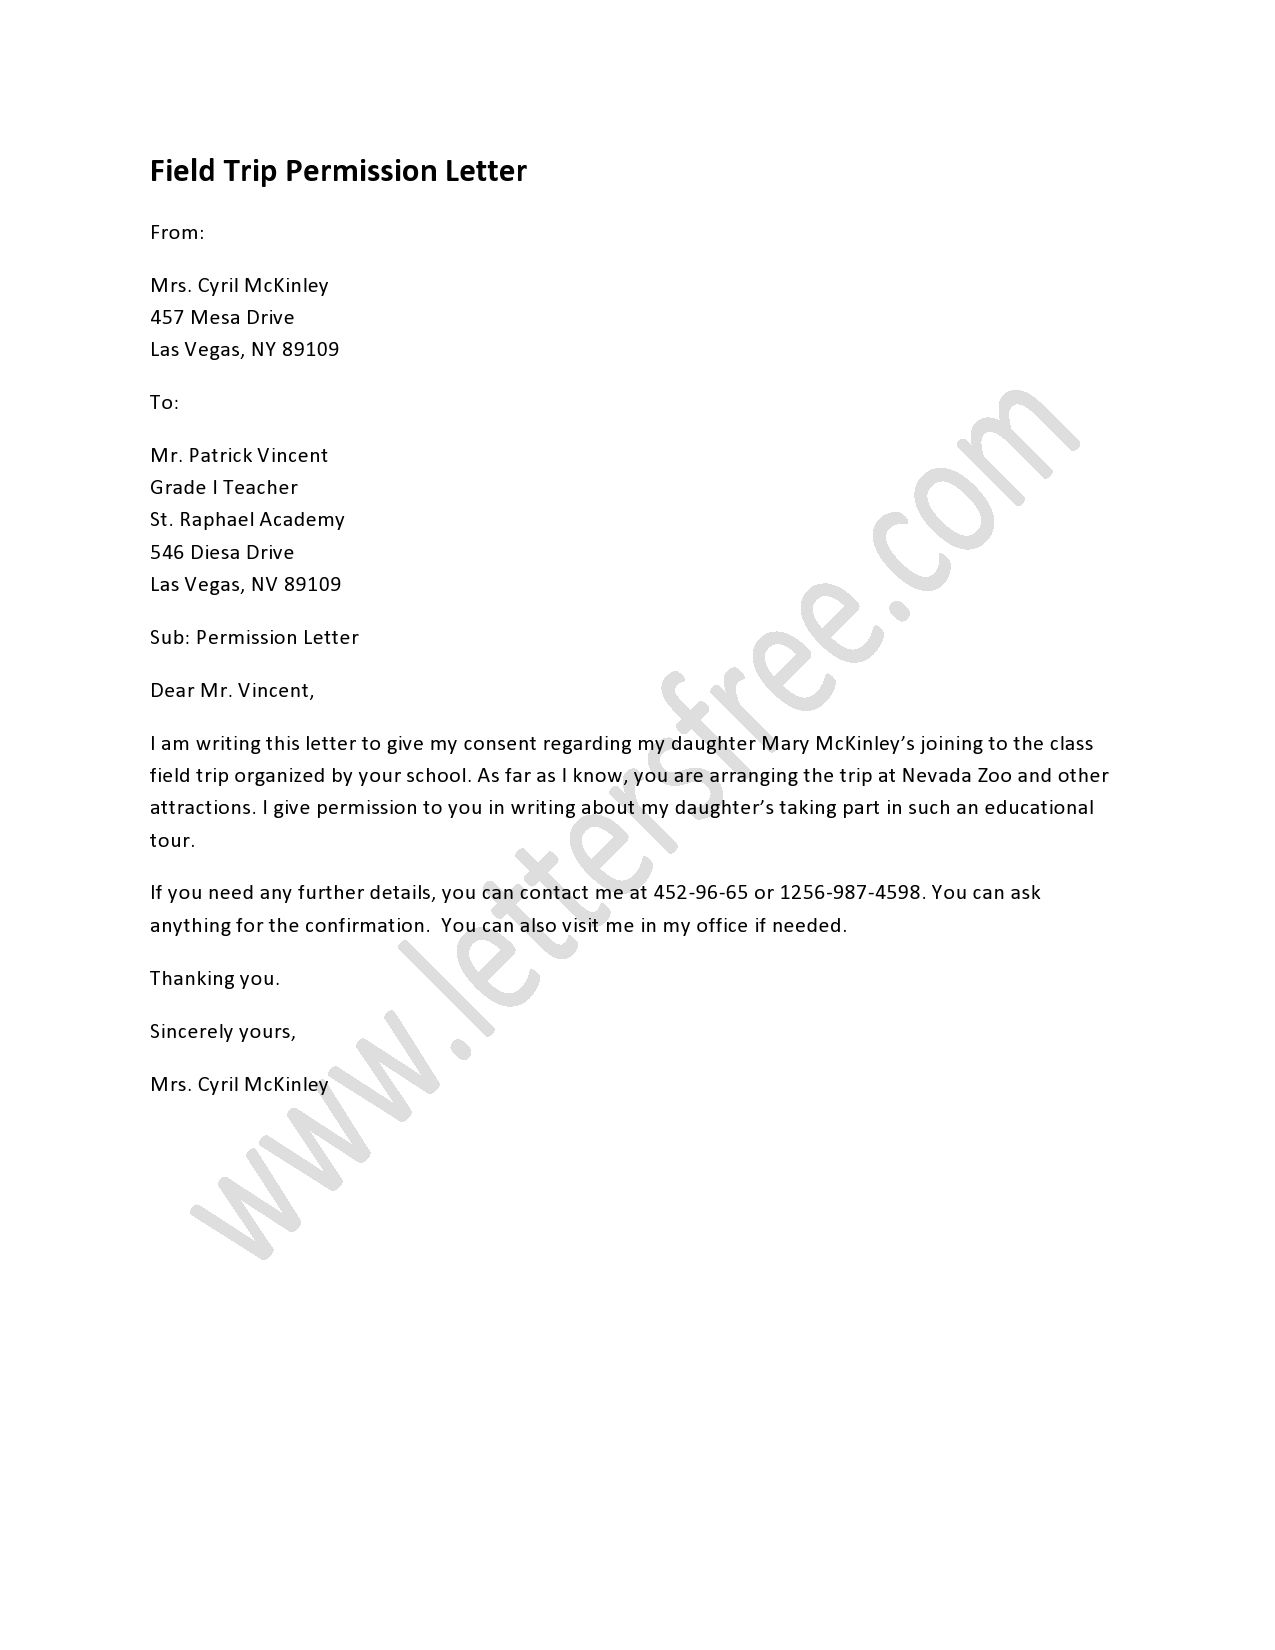 Field Trip Permission Letter Sample Permission Letters